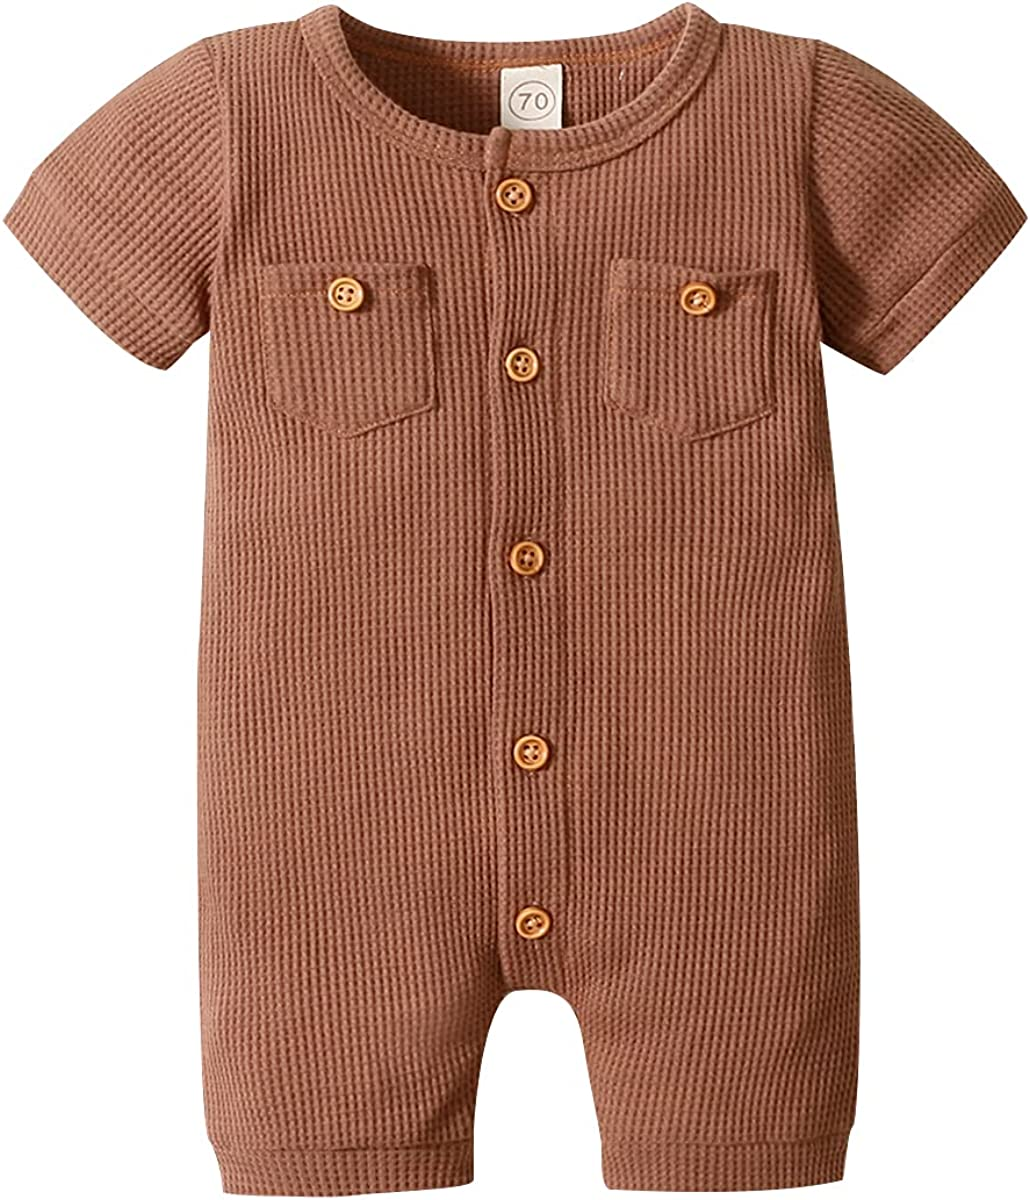 YOUNGER TREE Financial sales sale Infant Newborn Unisex Sleevel Solid Baby Boys Girls New product